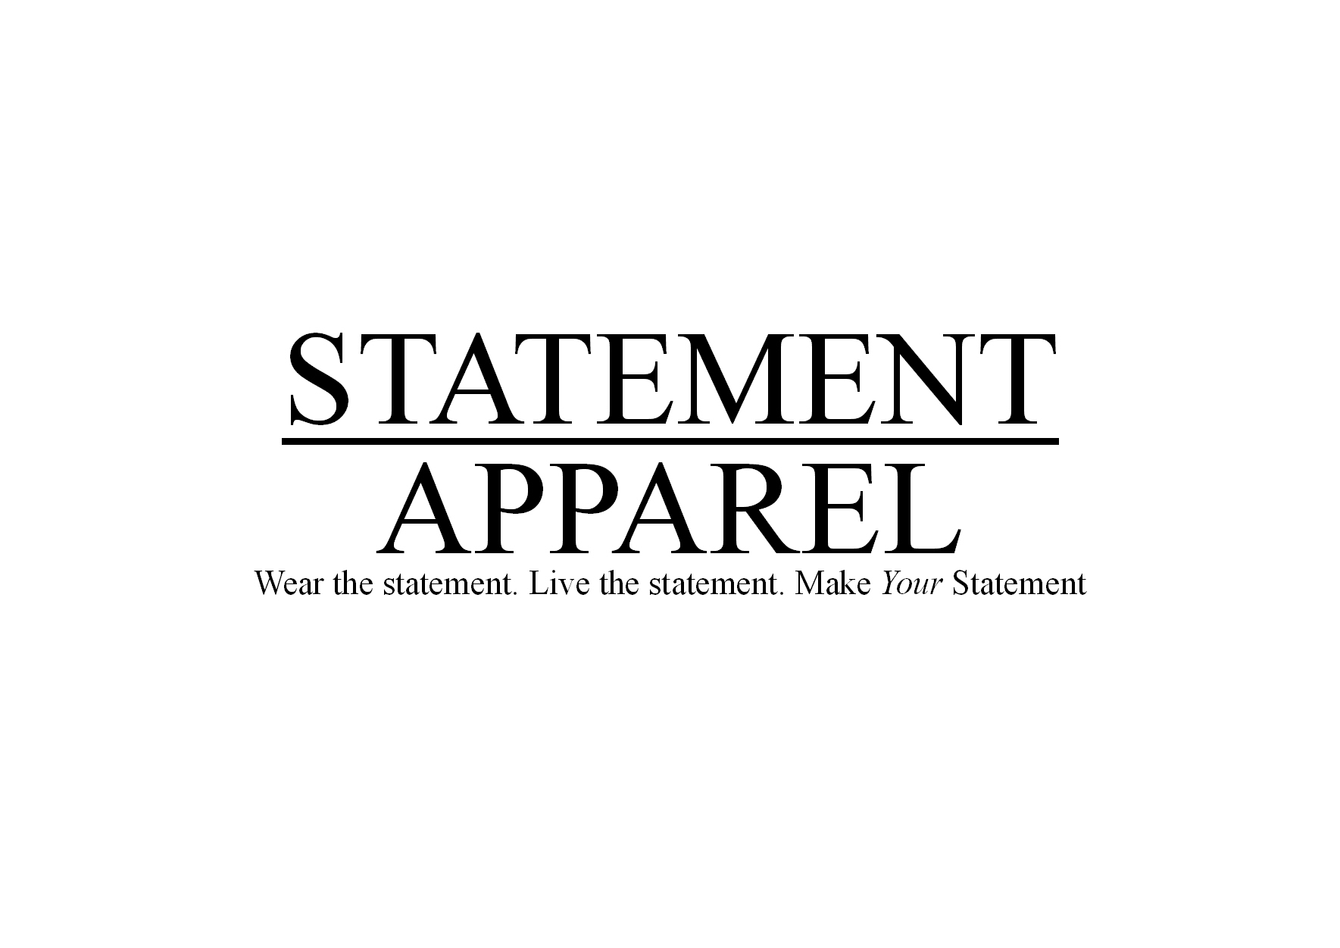 STATEMENT APPAREL